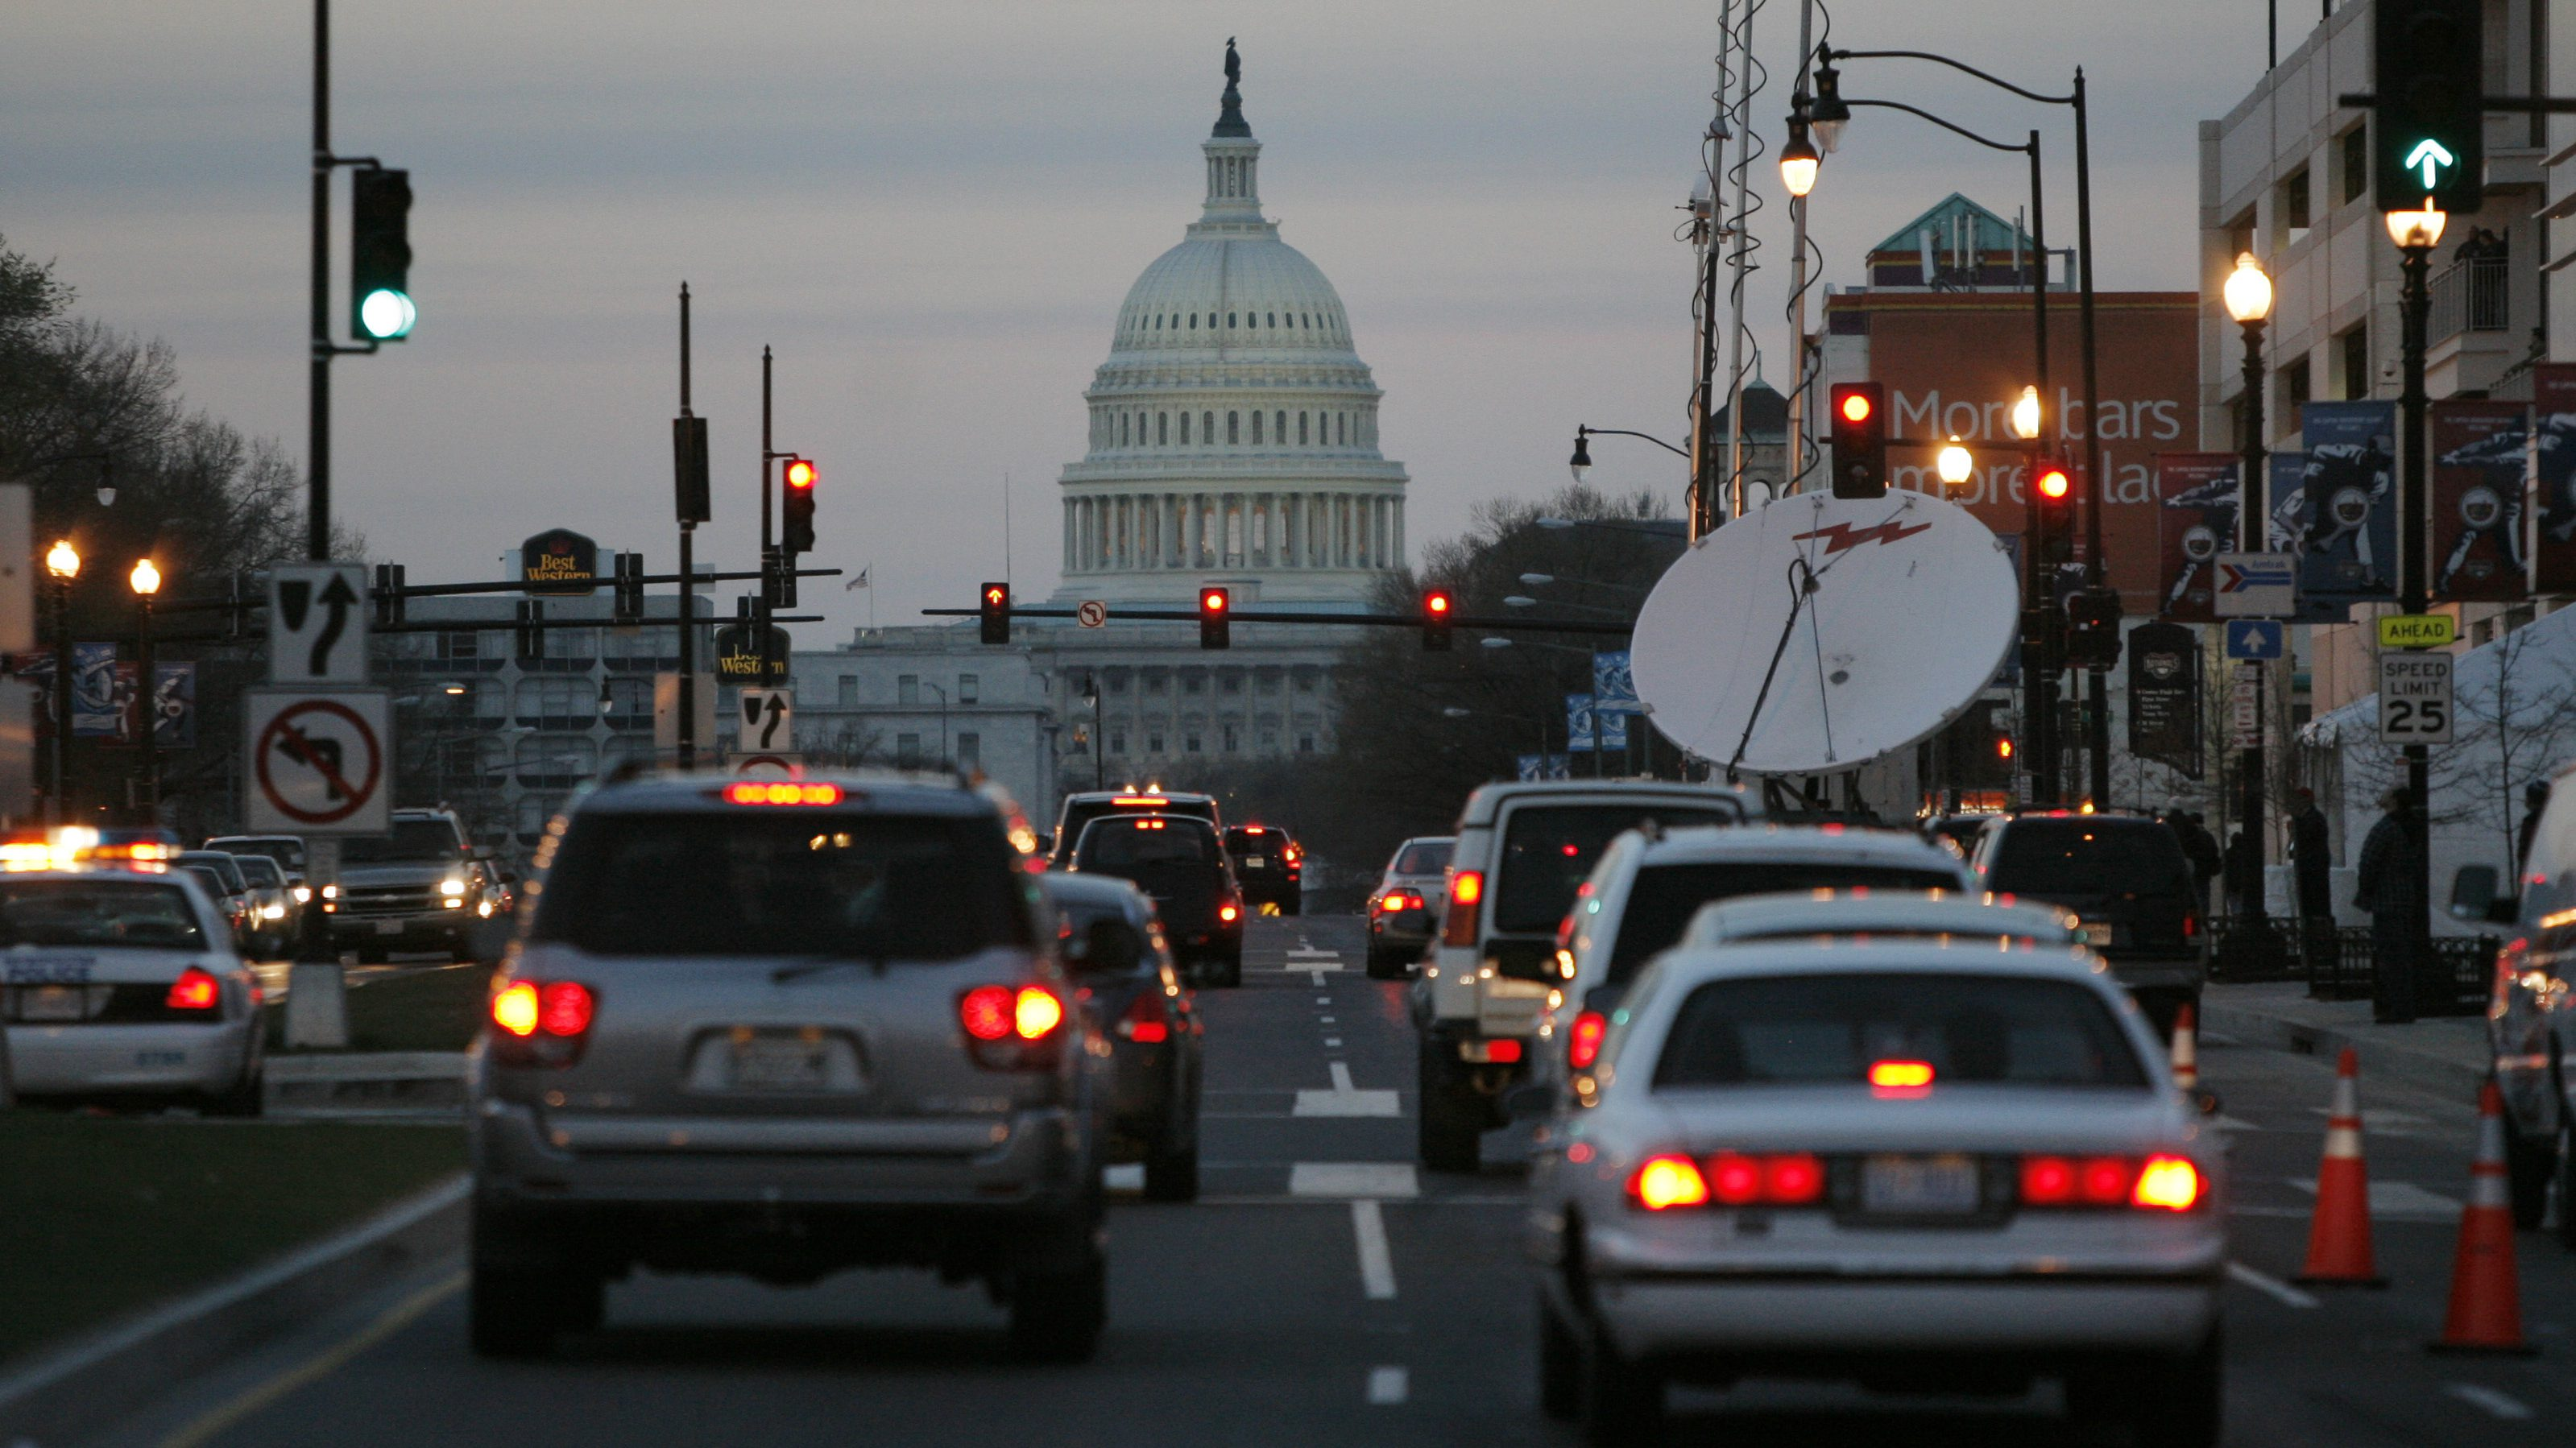 Traffic drives towards the U.S. Capitol building as they pass the outside of the new home of the Washington Nationals baseball team, Nationals Park, in Washington.